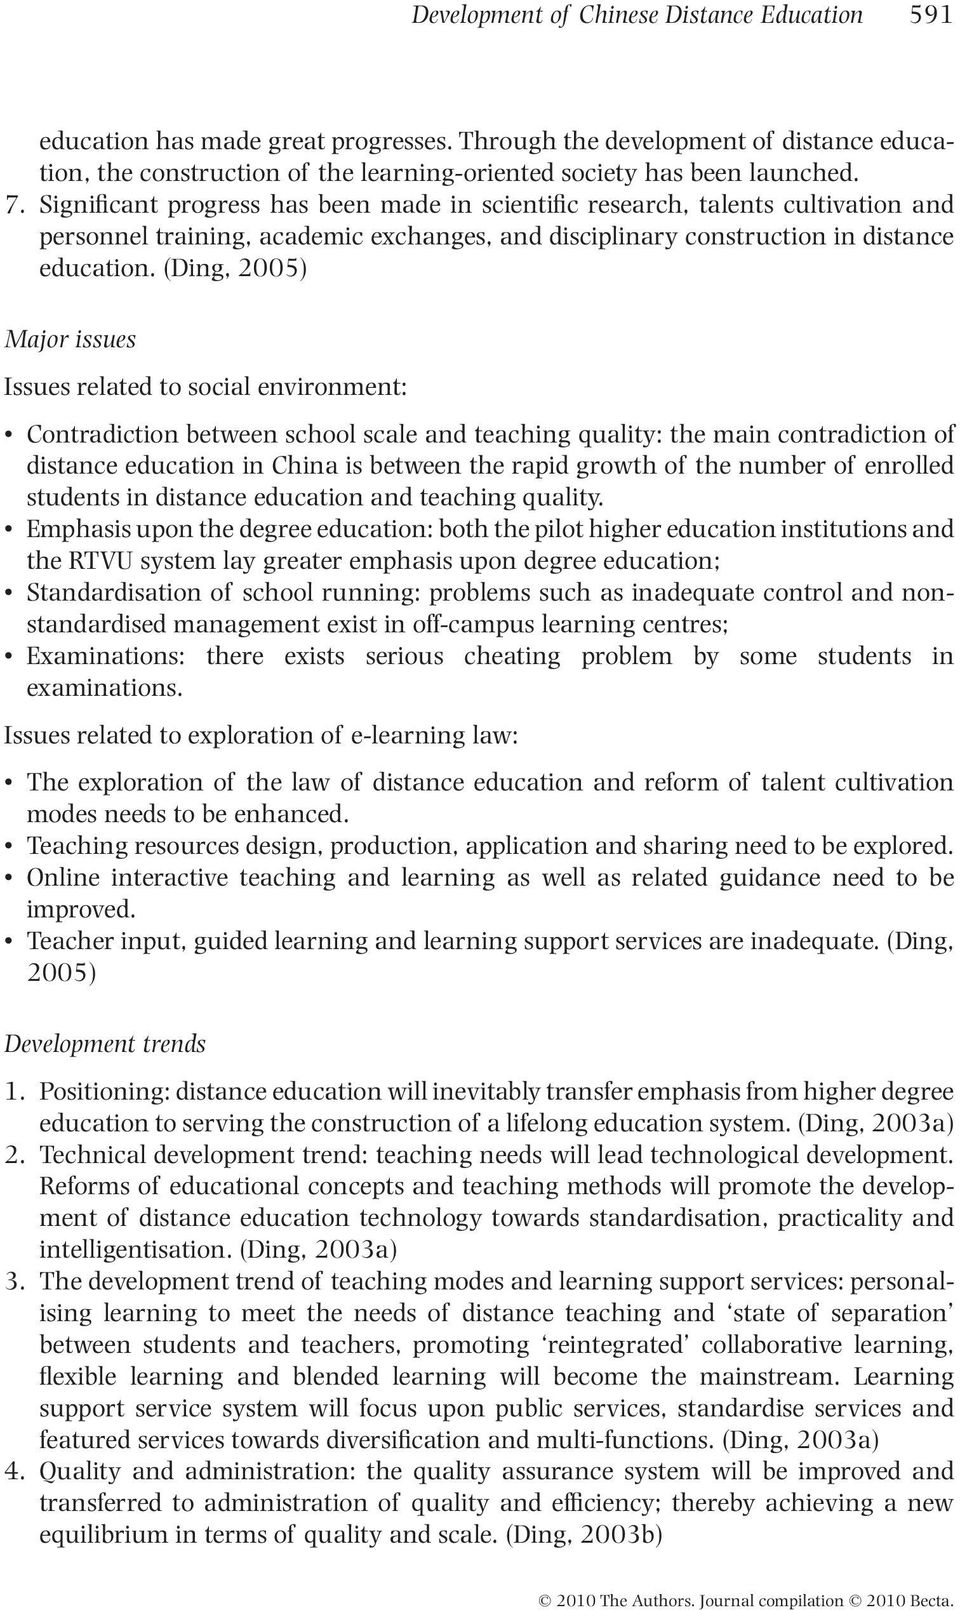 (Ding, 2005) Major issues Issues related to social environment: Contradiction between school scale and teaching quality: the main contradiction of distance education in China is between the rapid